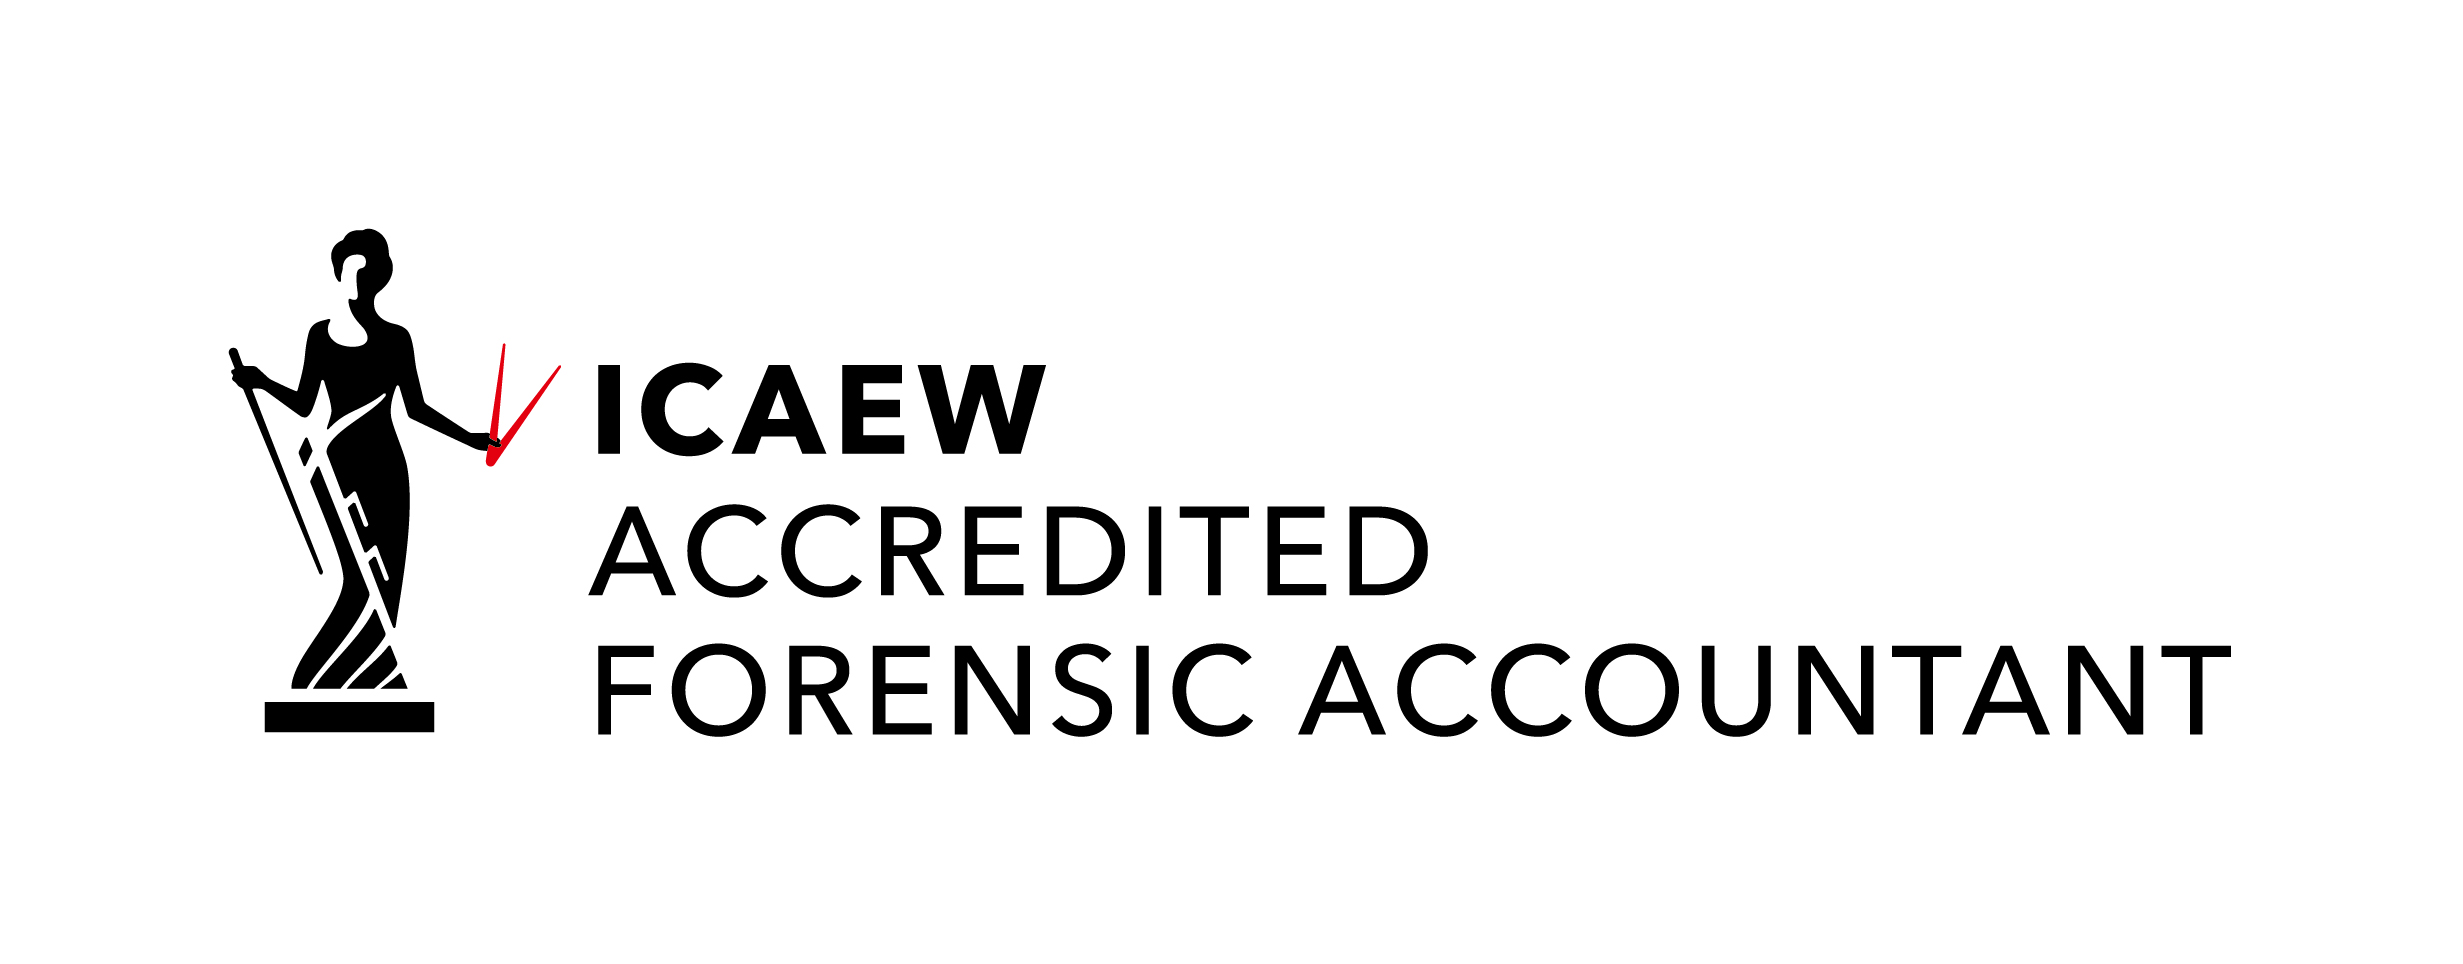 ICAEW Accredited Forensic Accountant logo